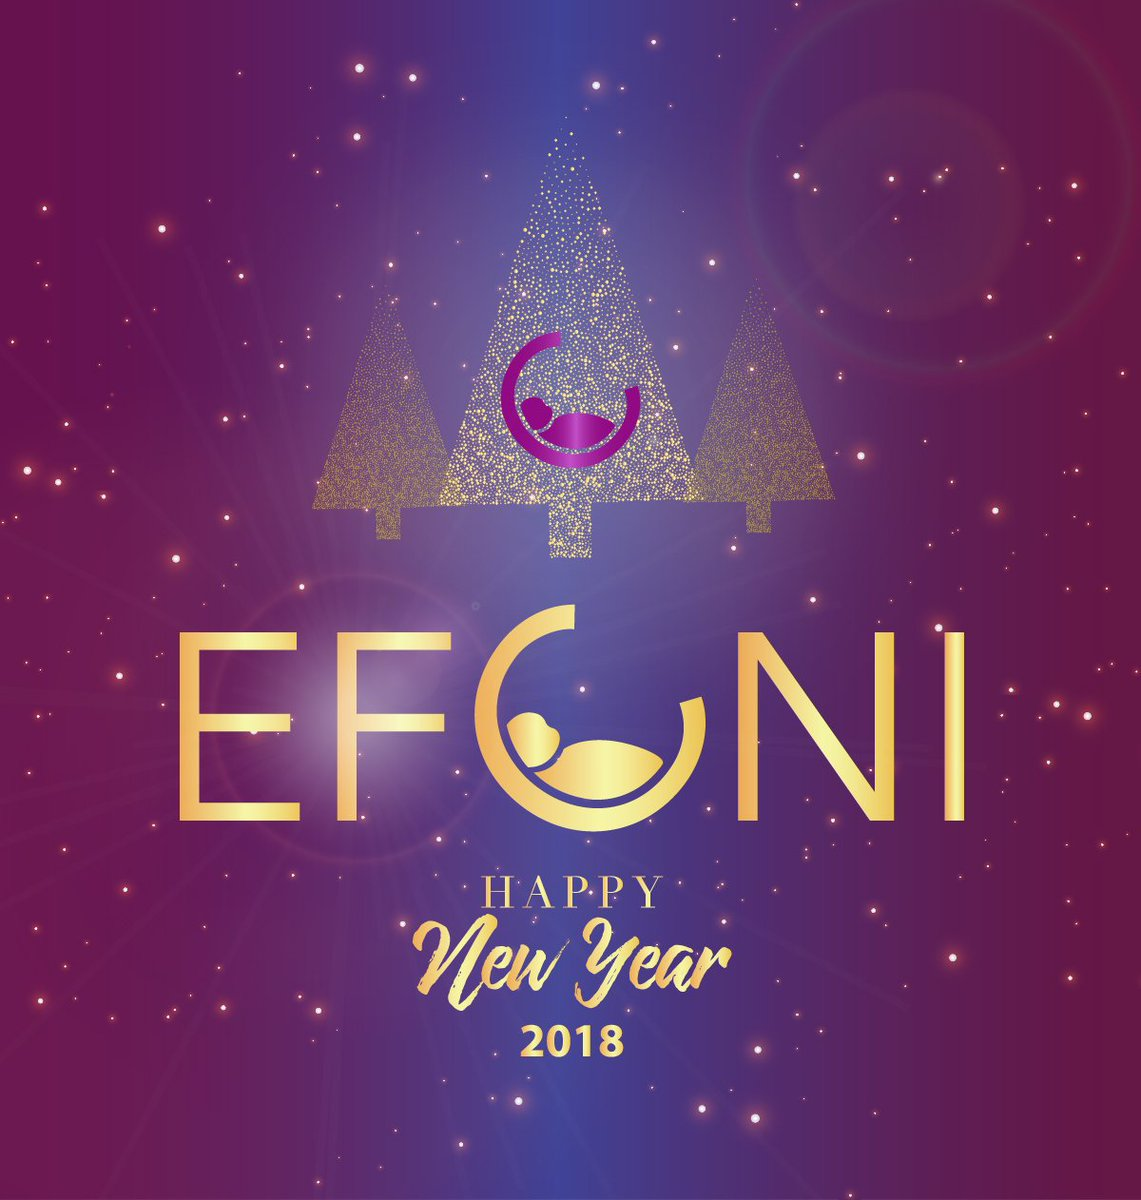 Efcni On Twitter Happy New Year Wishes To All Our Friends